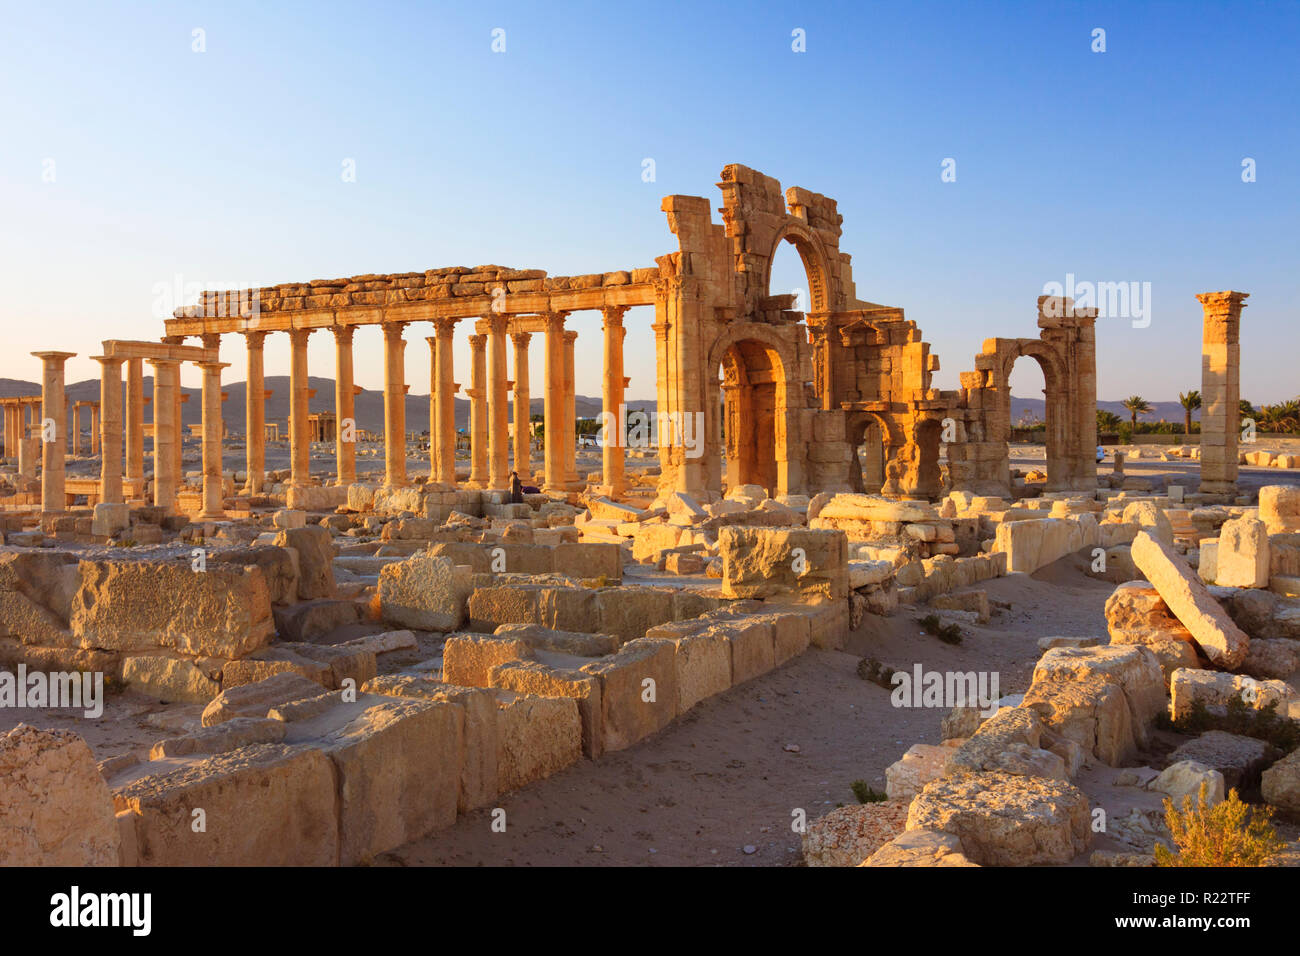 Palmyra, Homs Governorate, Syria - May 27th, 2009 :  Great Colonnade and Monumental Arch of Palmyra. The Monumental Arch was a 3rd century Roman ornam - Stock Image